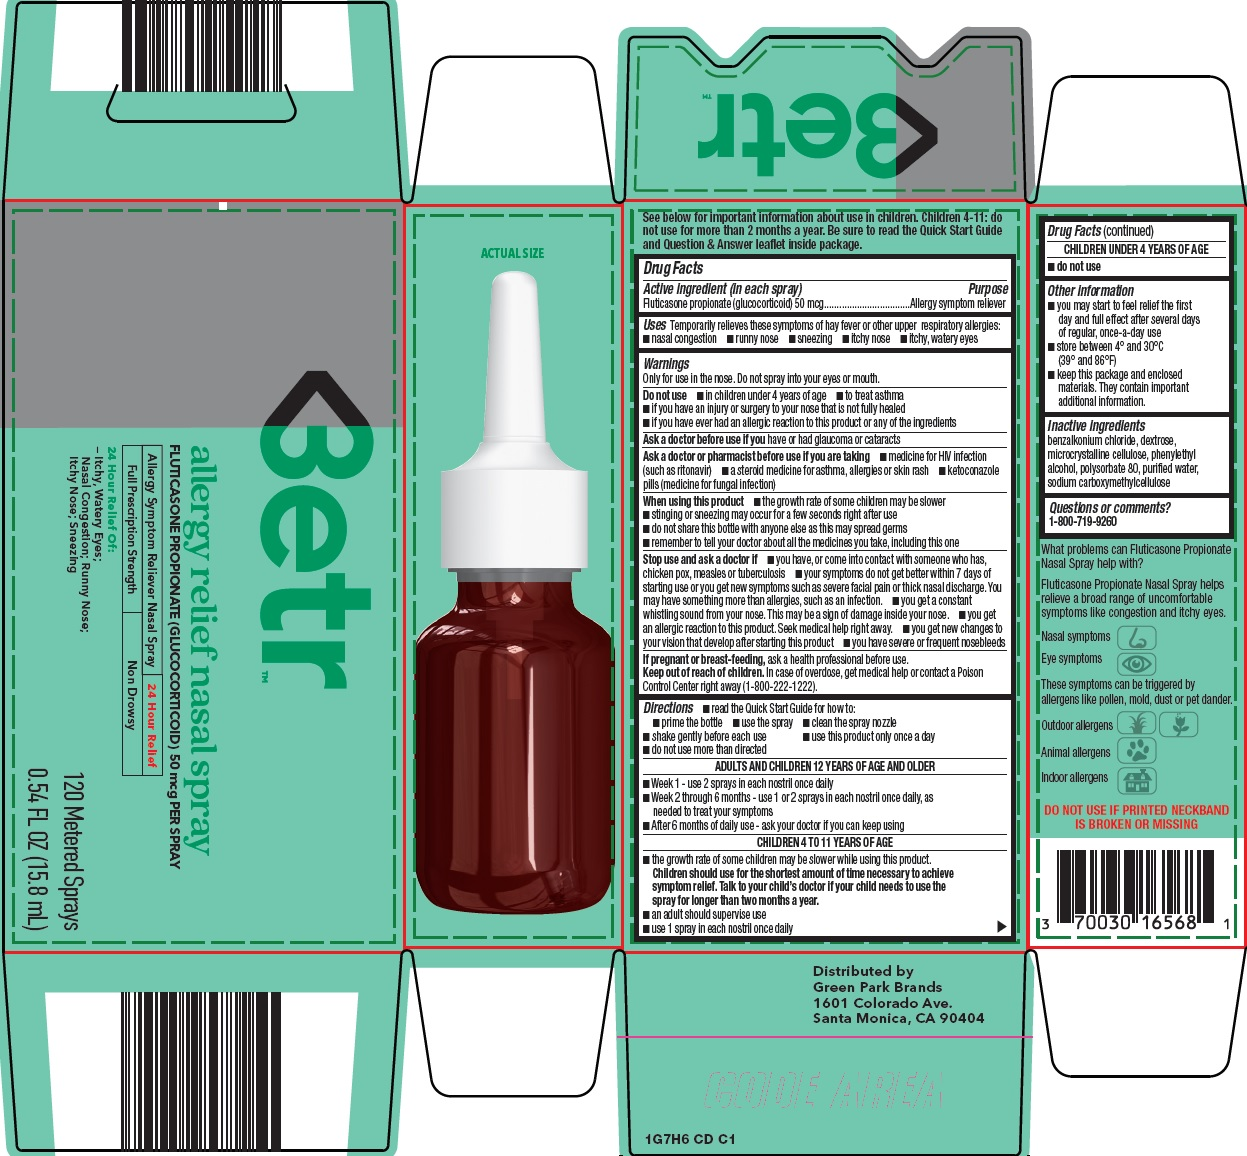 1g7-cd-allergy-relief-nasal-spray